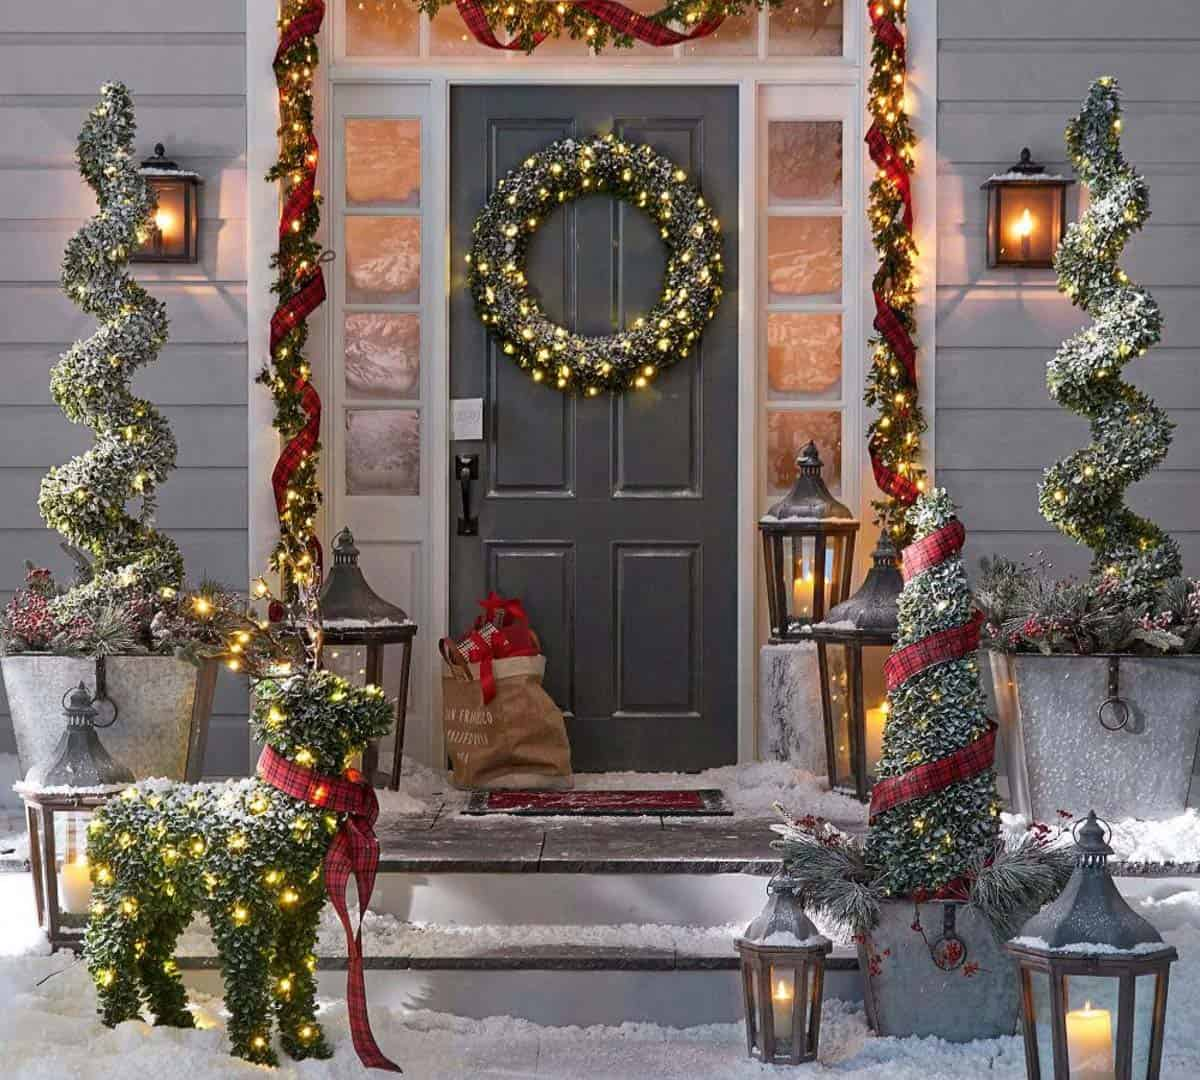 outdoor-christmas-decorated-front-door-with-boxwood-garland